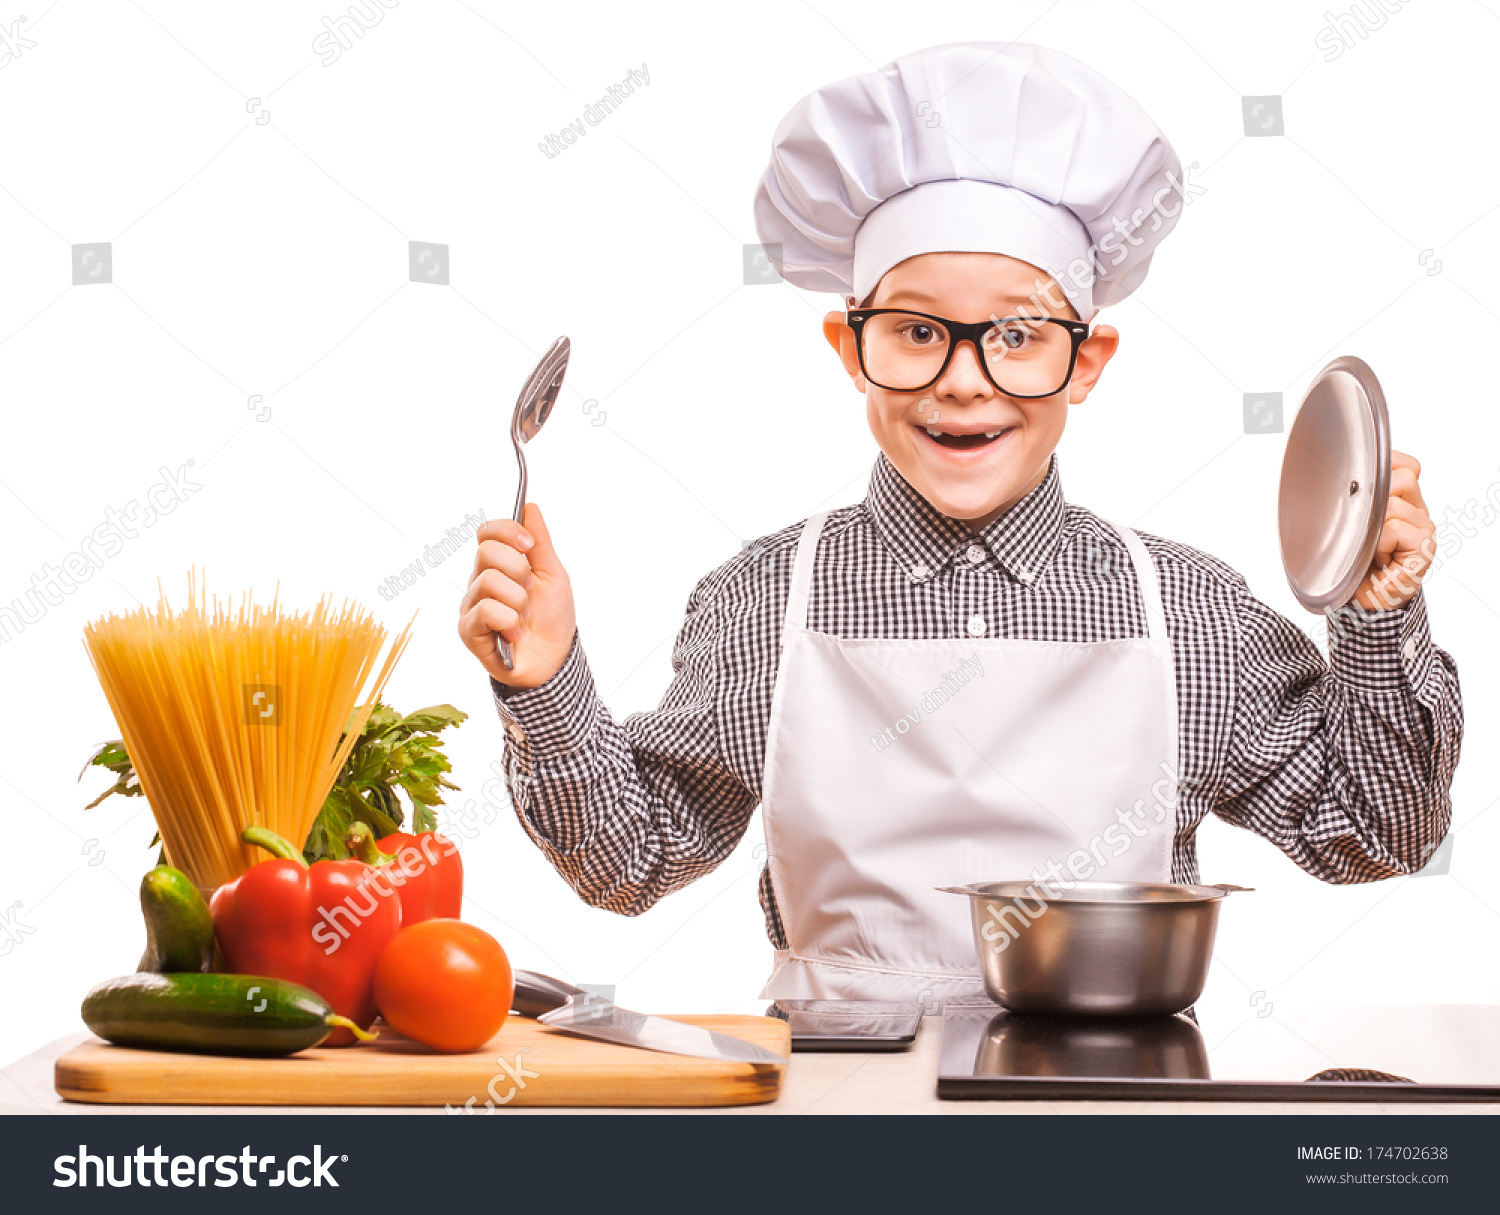 Kid Chef Cooking Kitchen Stock Photo (Download Now) 174702638 ...